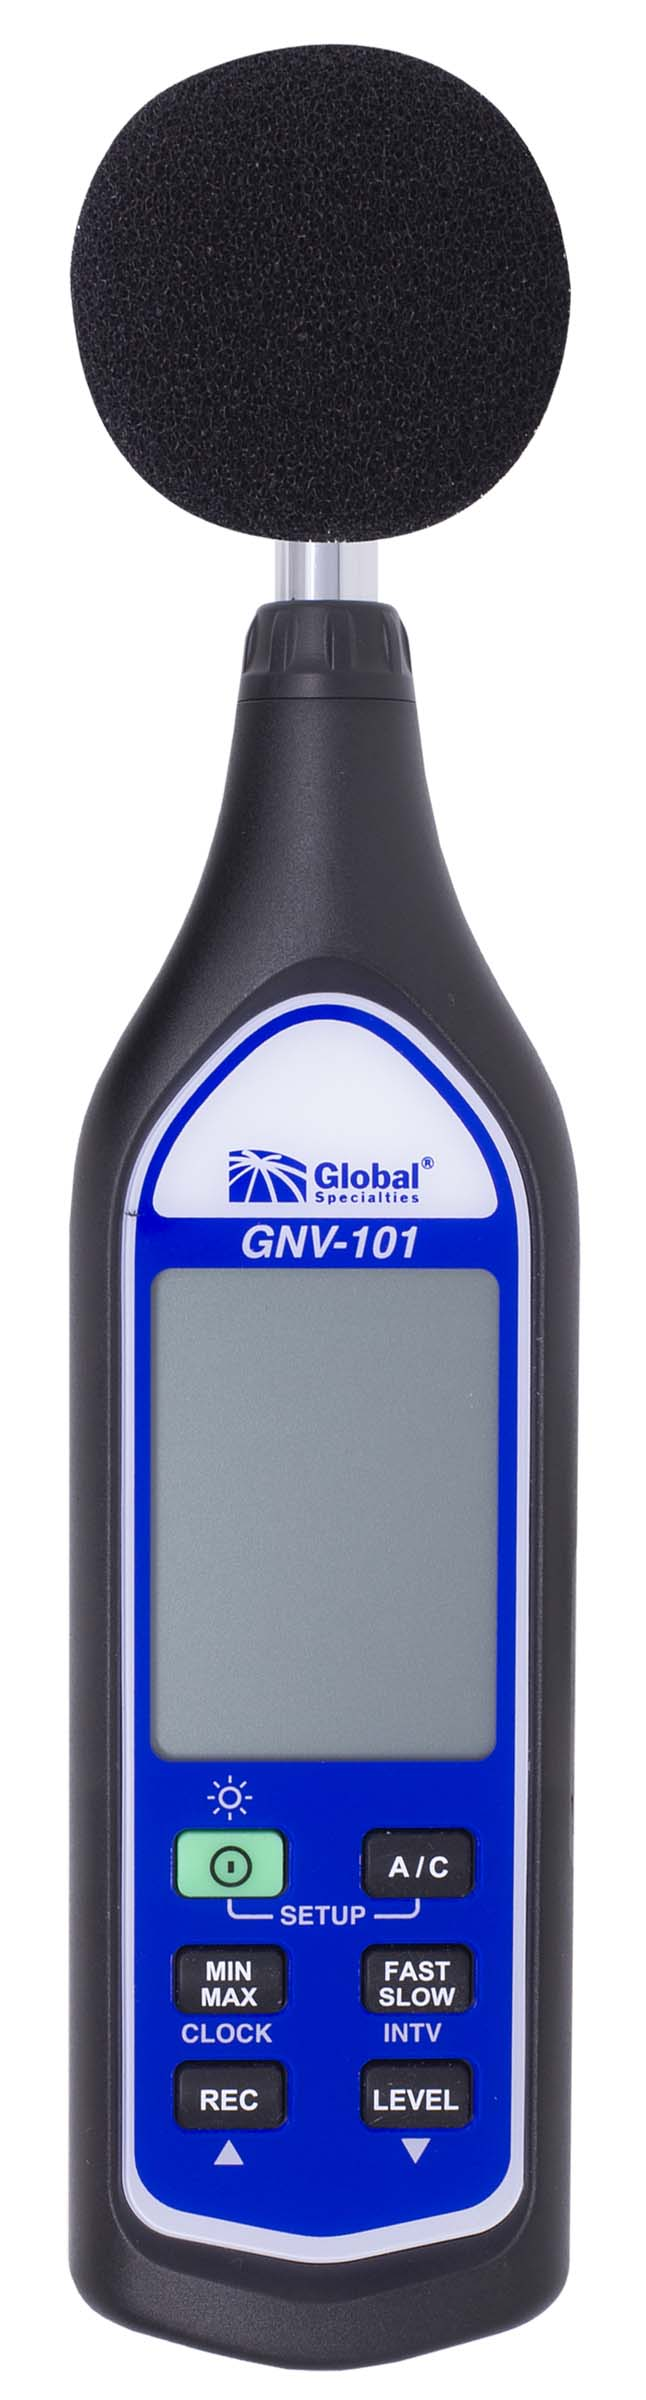 Global Specialties GNV-101 Sound Level Meter w/Data Logging, Class 2 Photo